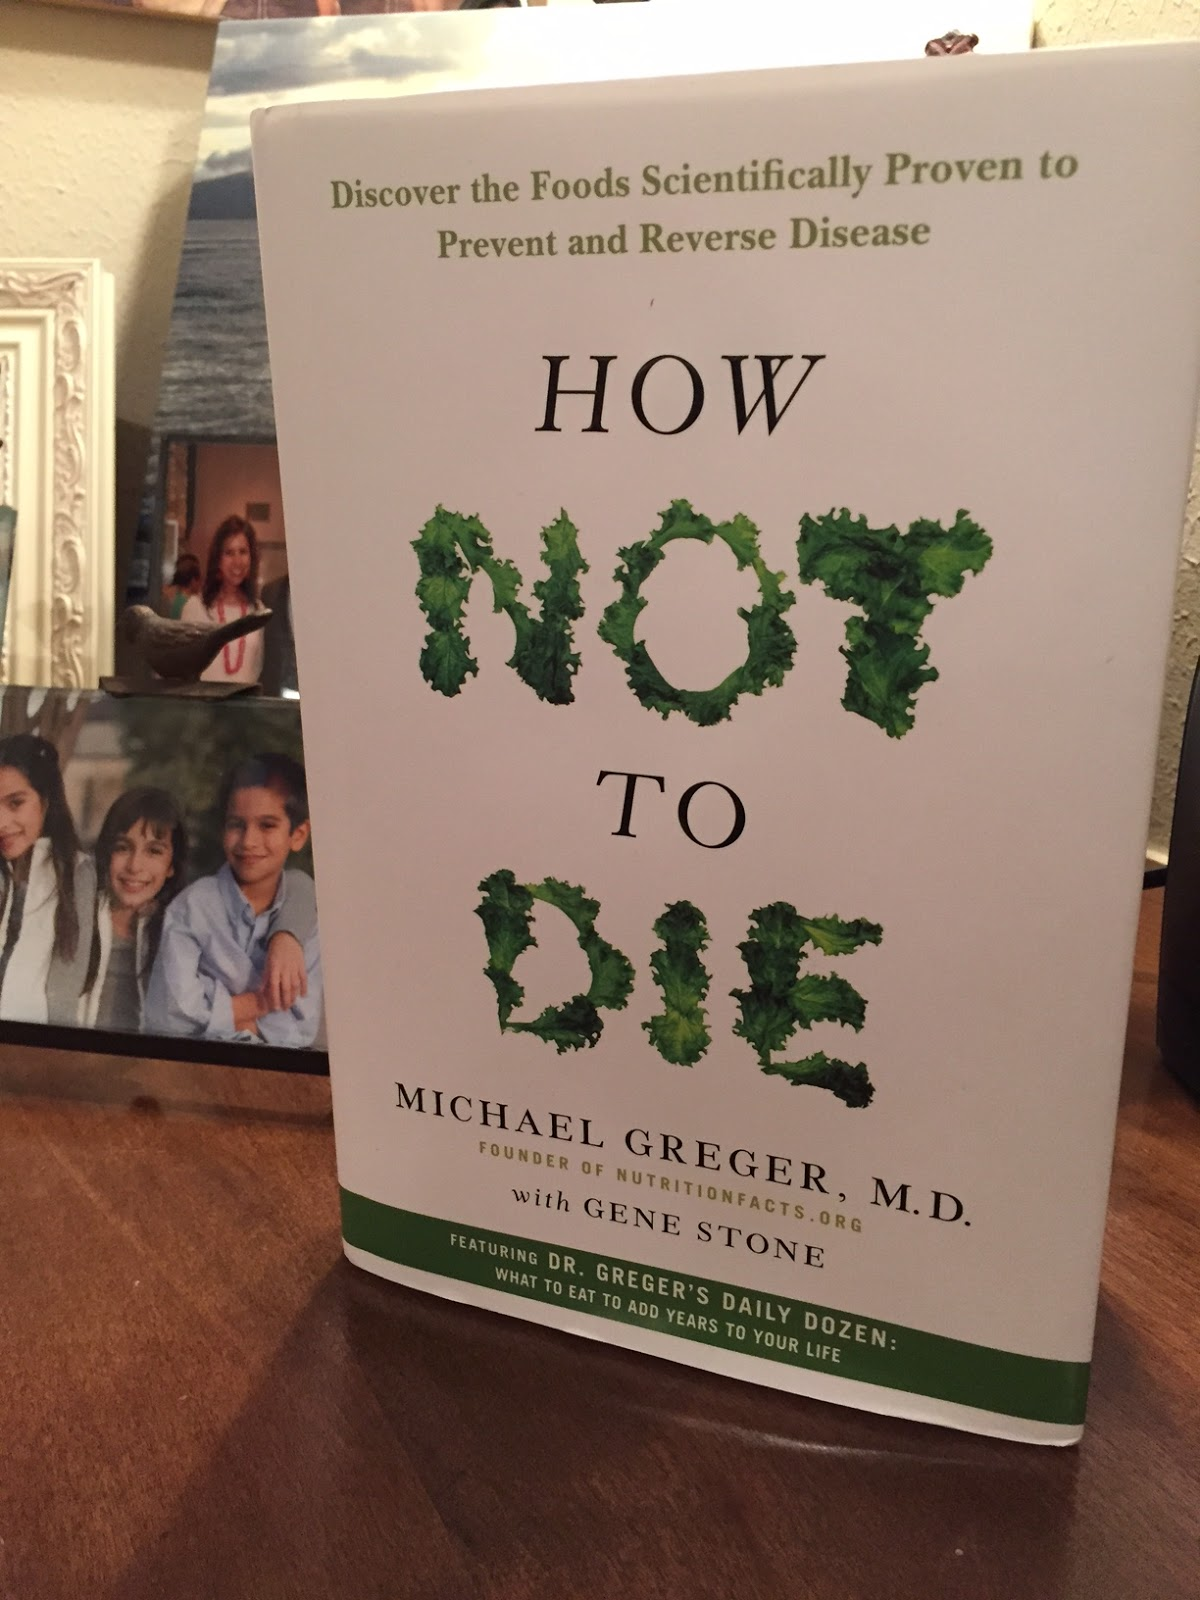 After Reading The Preface And Introduction, I Went Straight To Chapter 11,  How Not To Die From Breast Cancer This Easy To Read Chapter Reiterated A  Lot Of